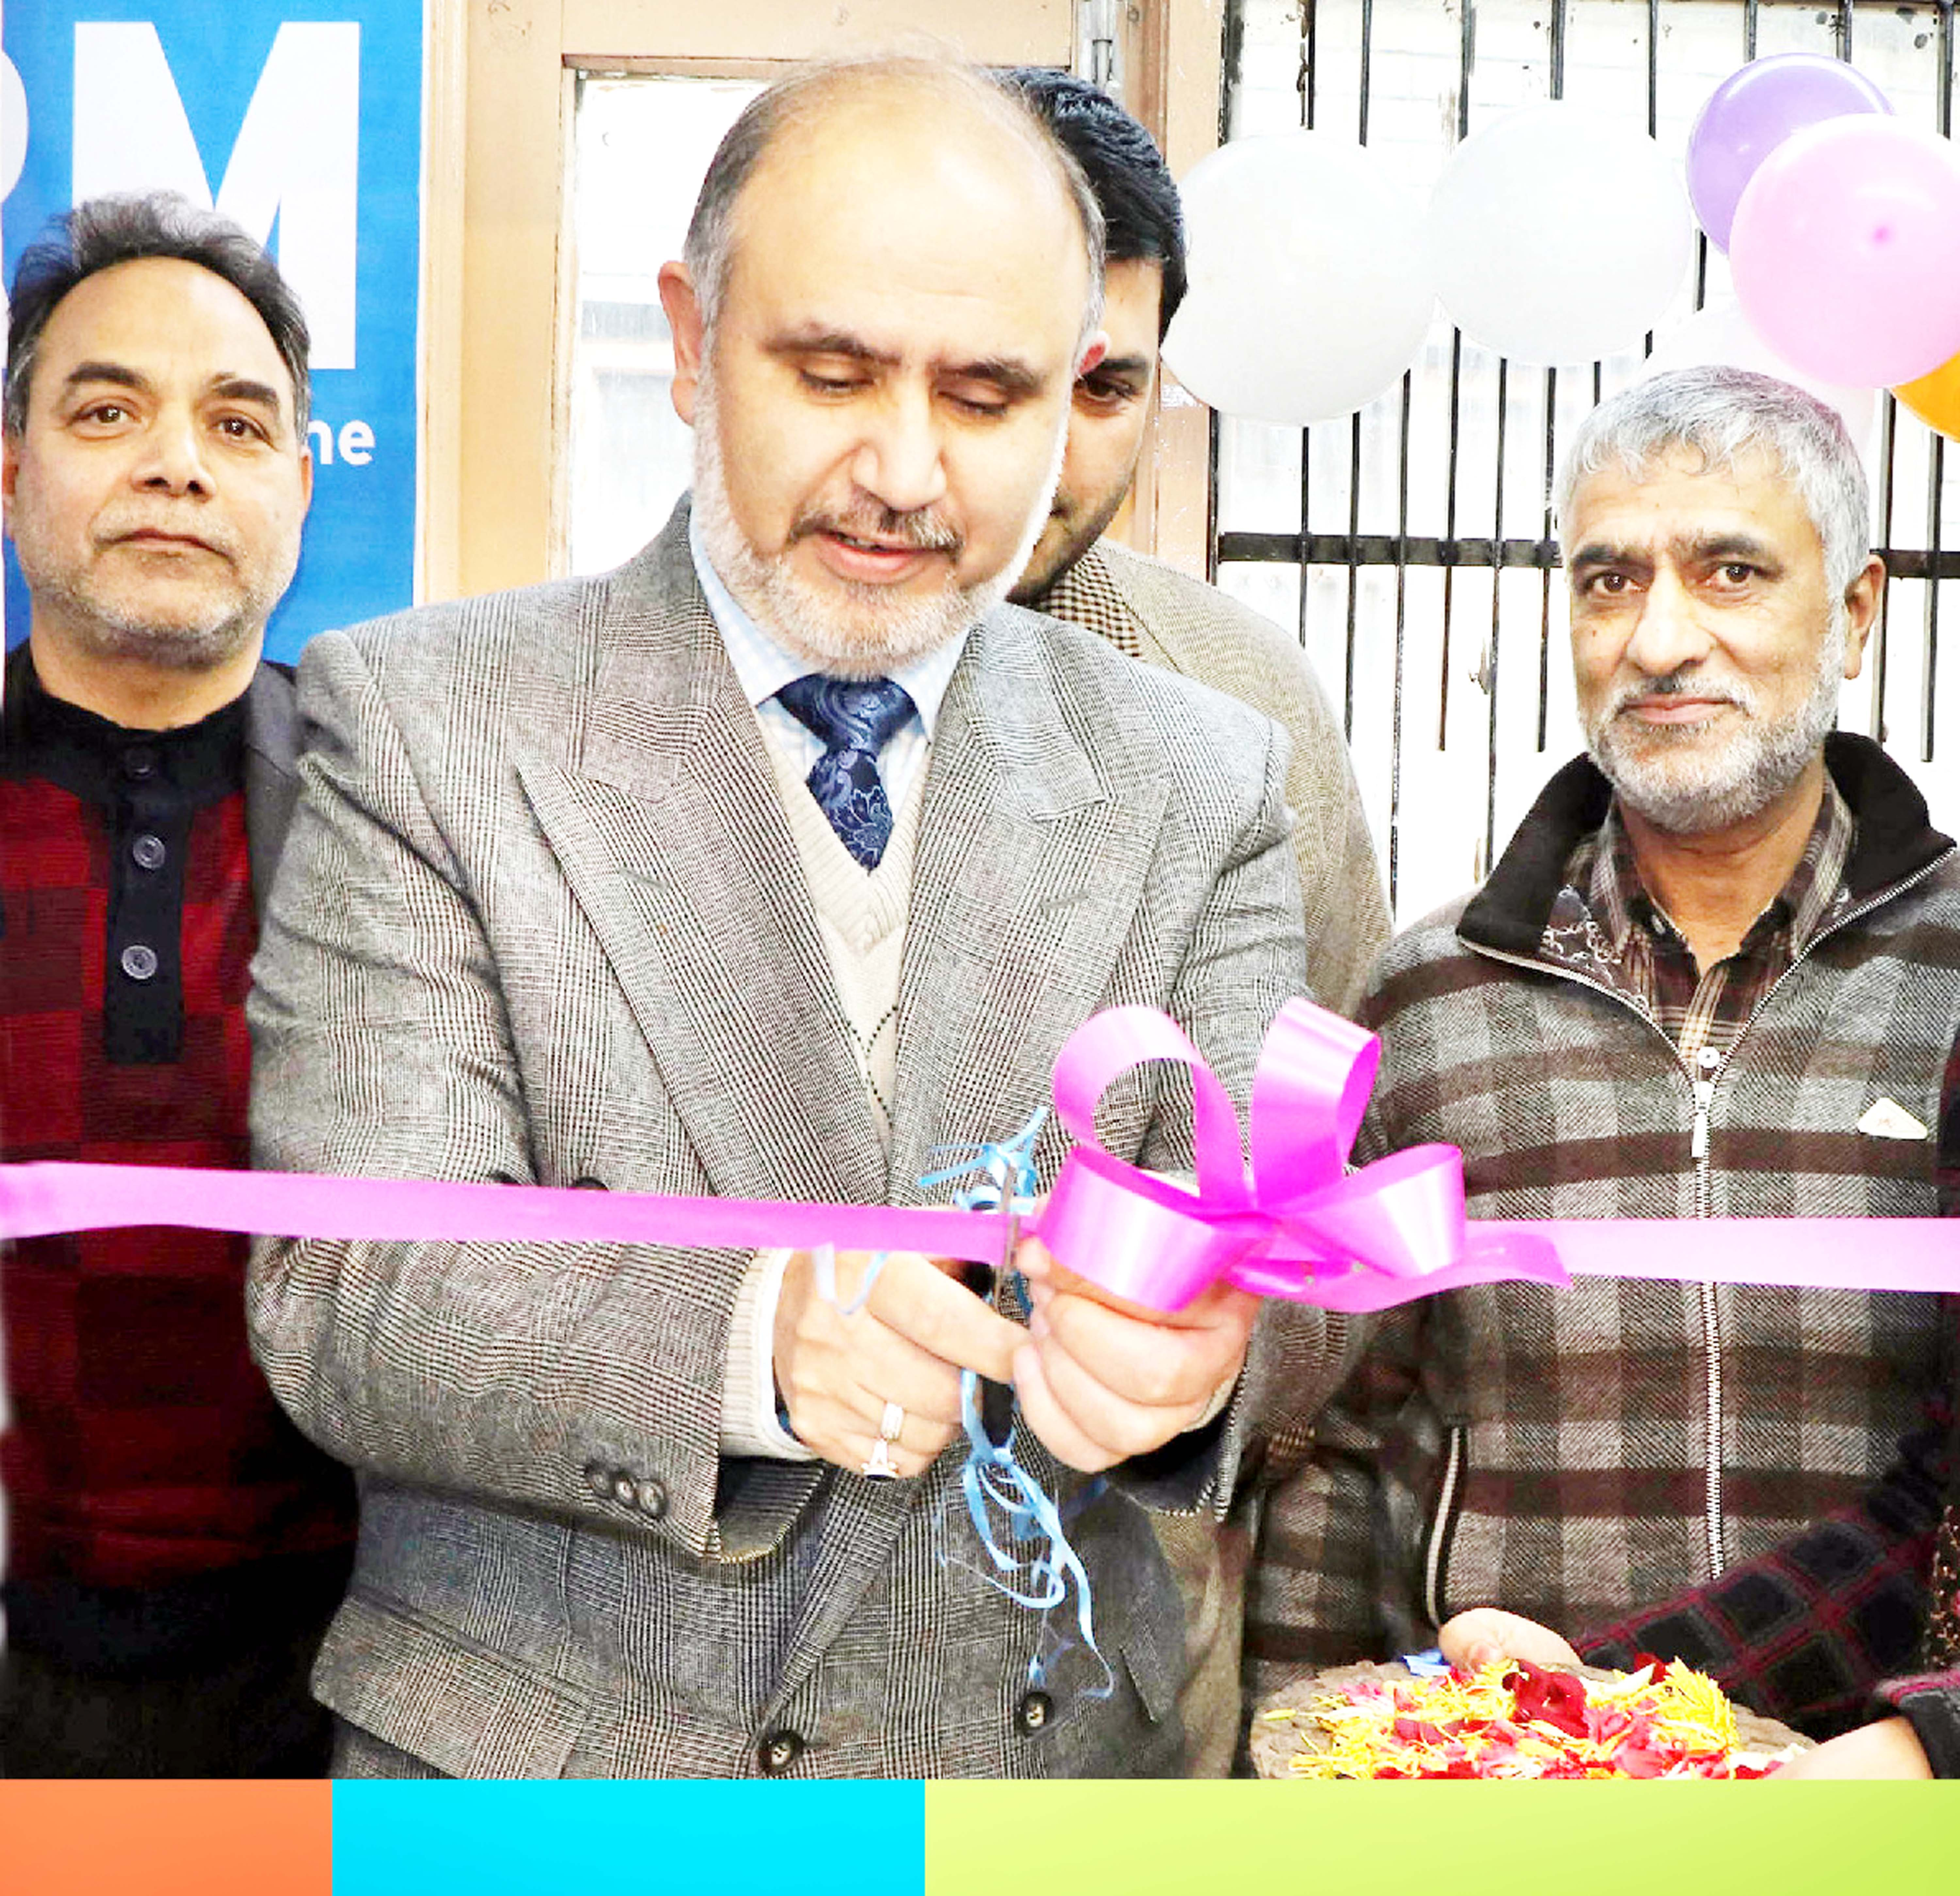 Zonal Head Kashmir (Central I) of J&K Bank Syed Rais Maqbool inaugurating CRM Machine at BU Hari Singh High Street in Srinagar.